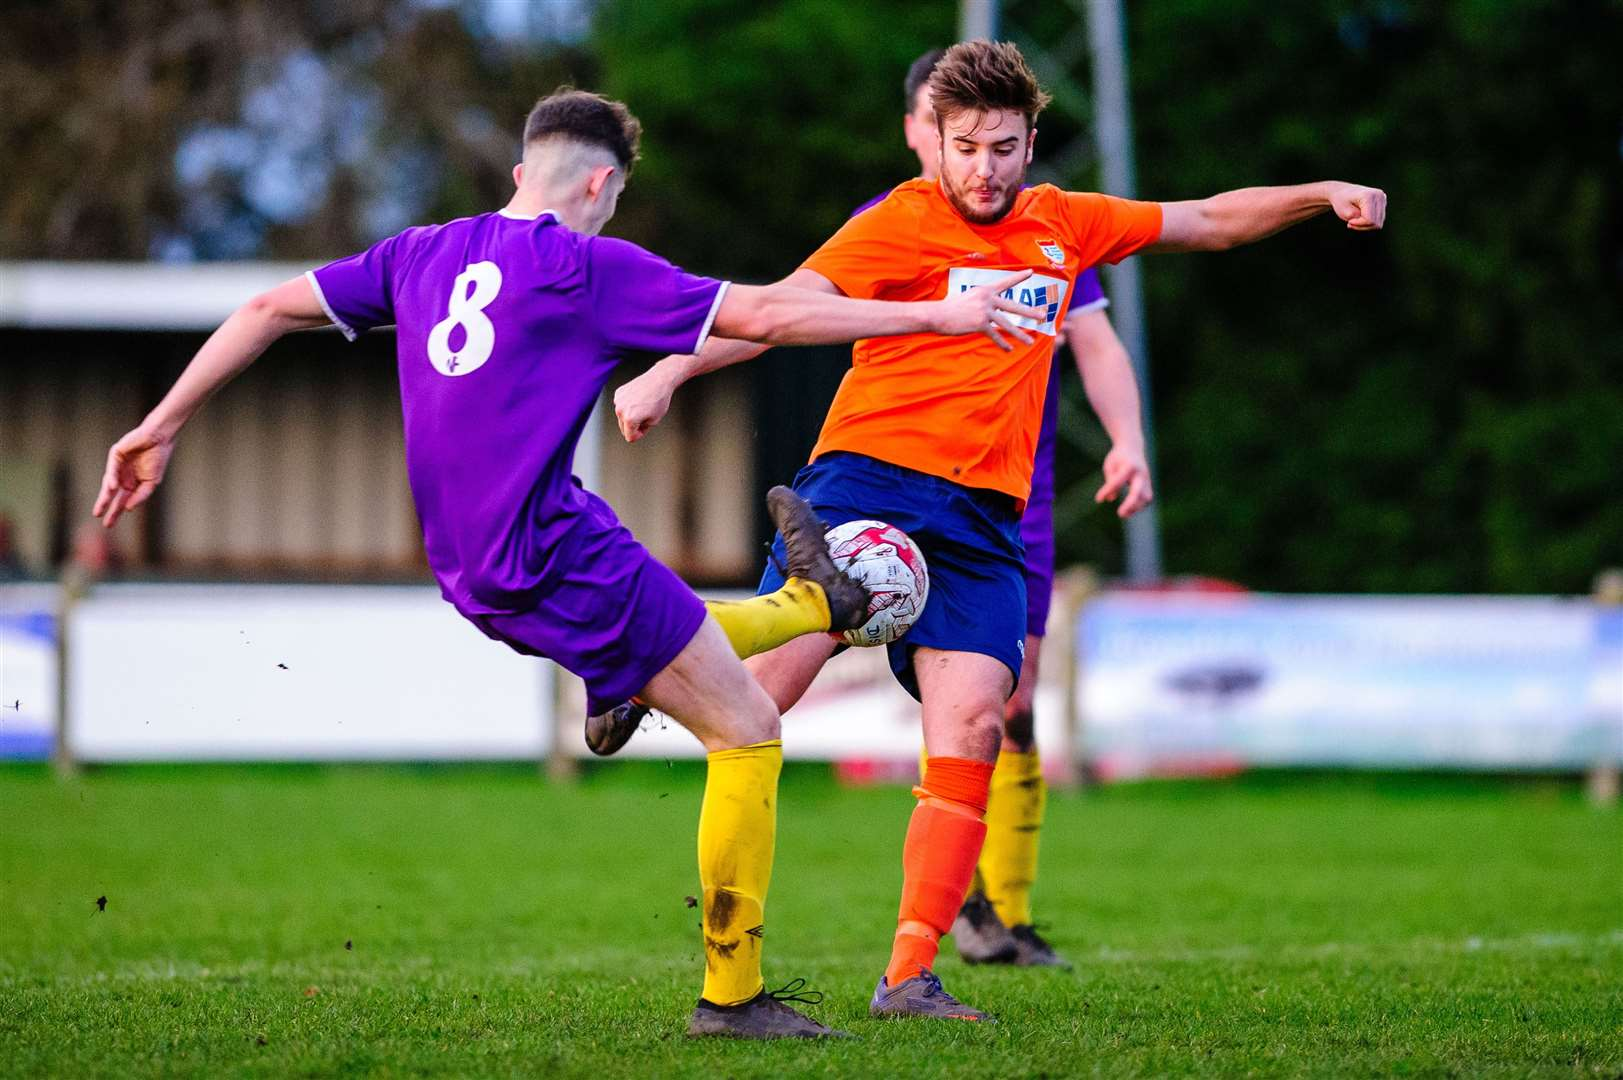 Football action from Diss Town v Wisbech St Mary - Ryan Swift..Mark Bullimore Photography 2019. (38855866)